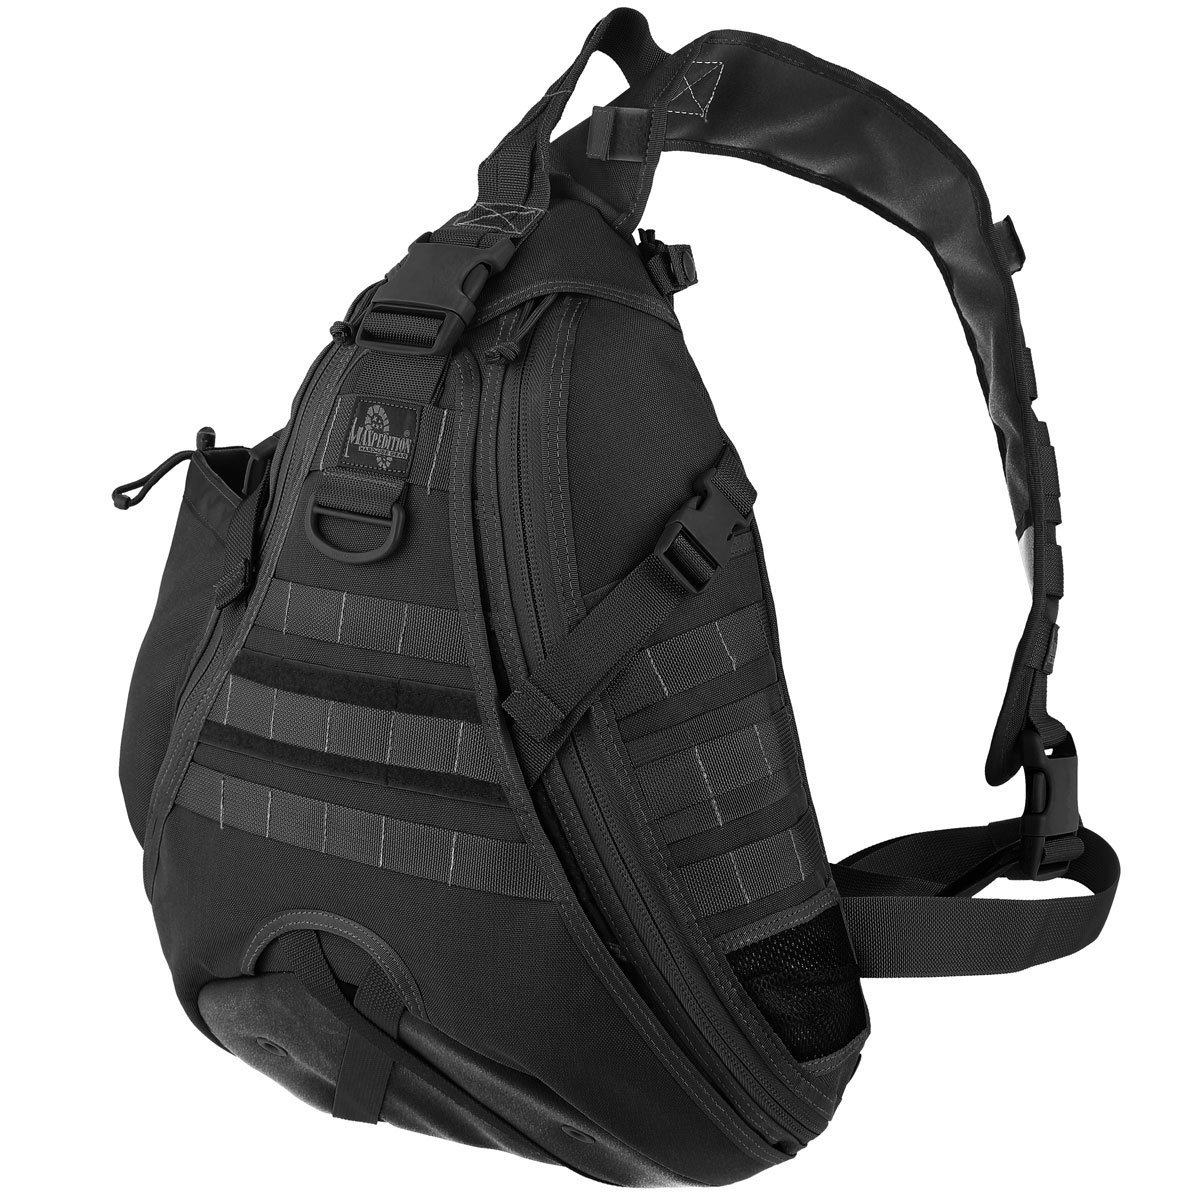 Balo Maxpedition Monsoon Gearslinger – Black